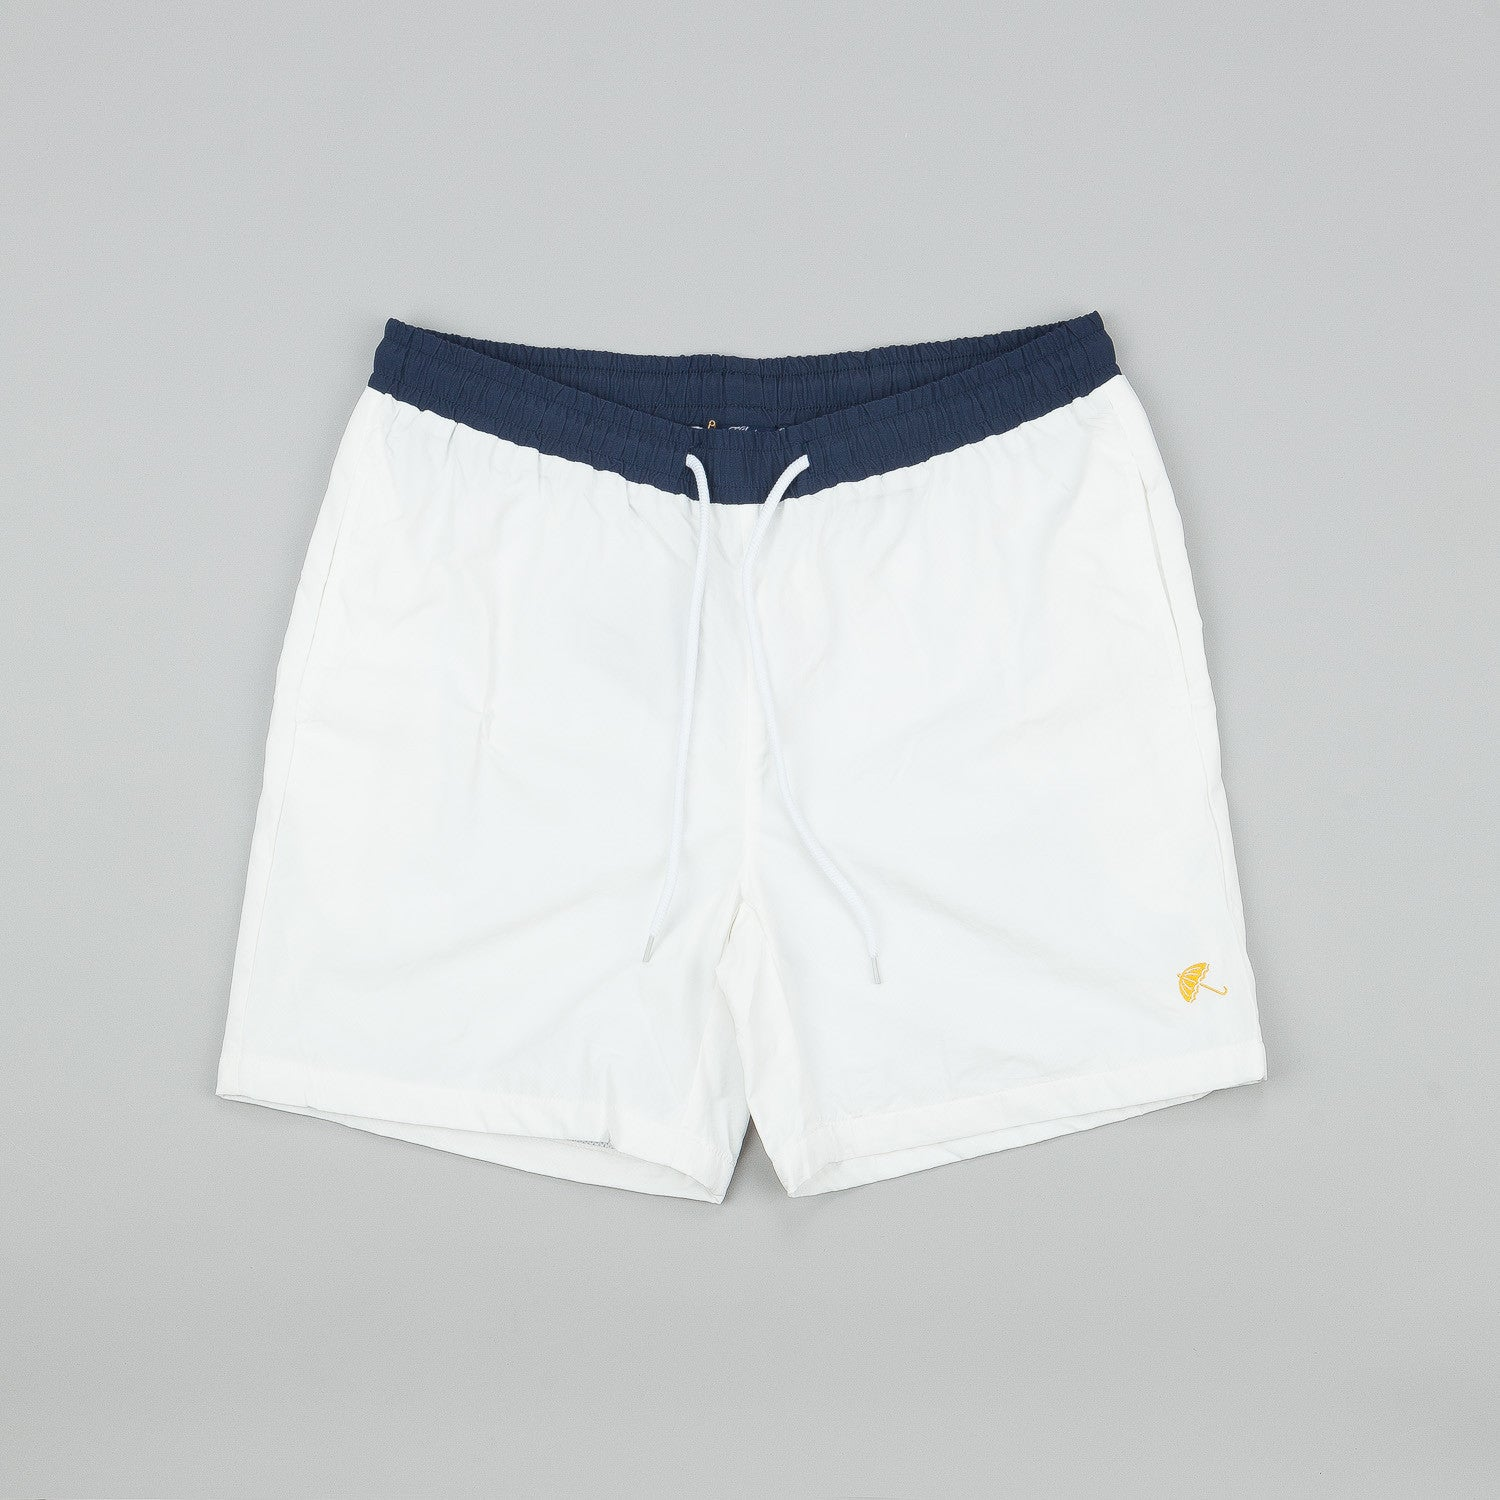 Helas Swimming Classic Short